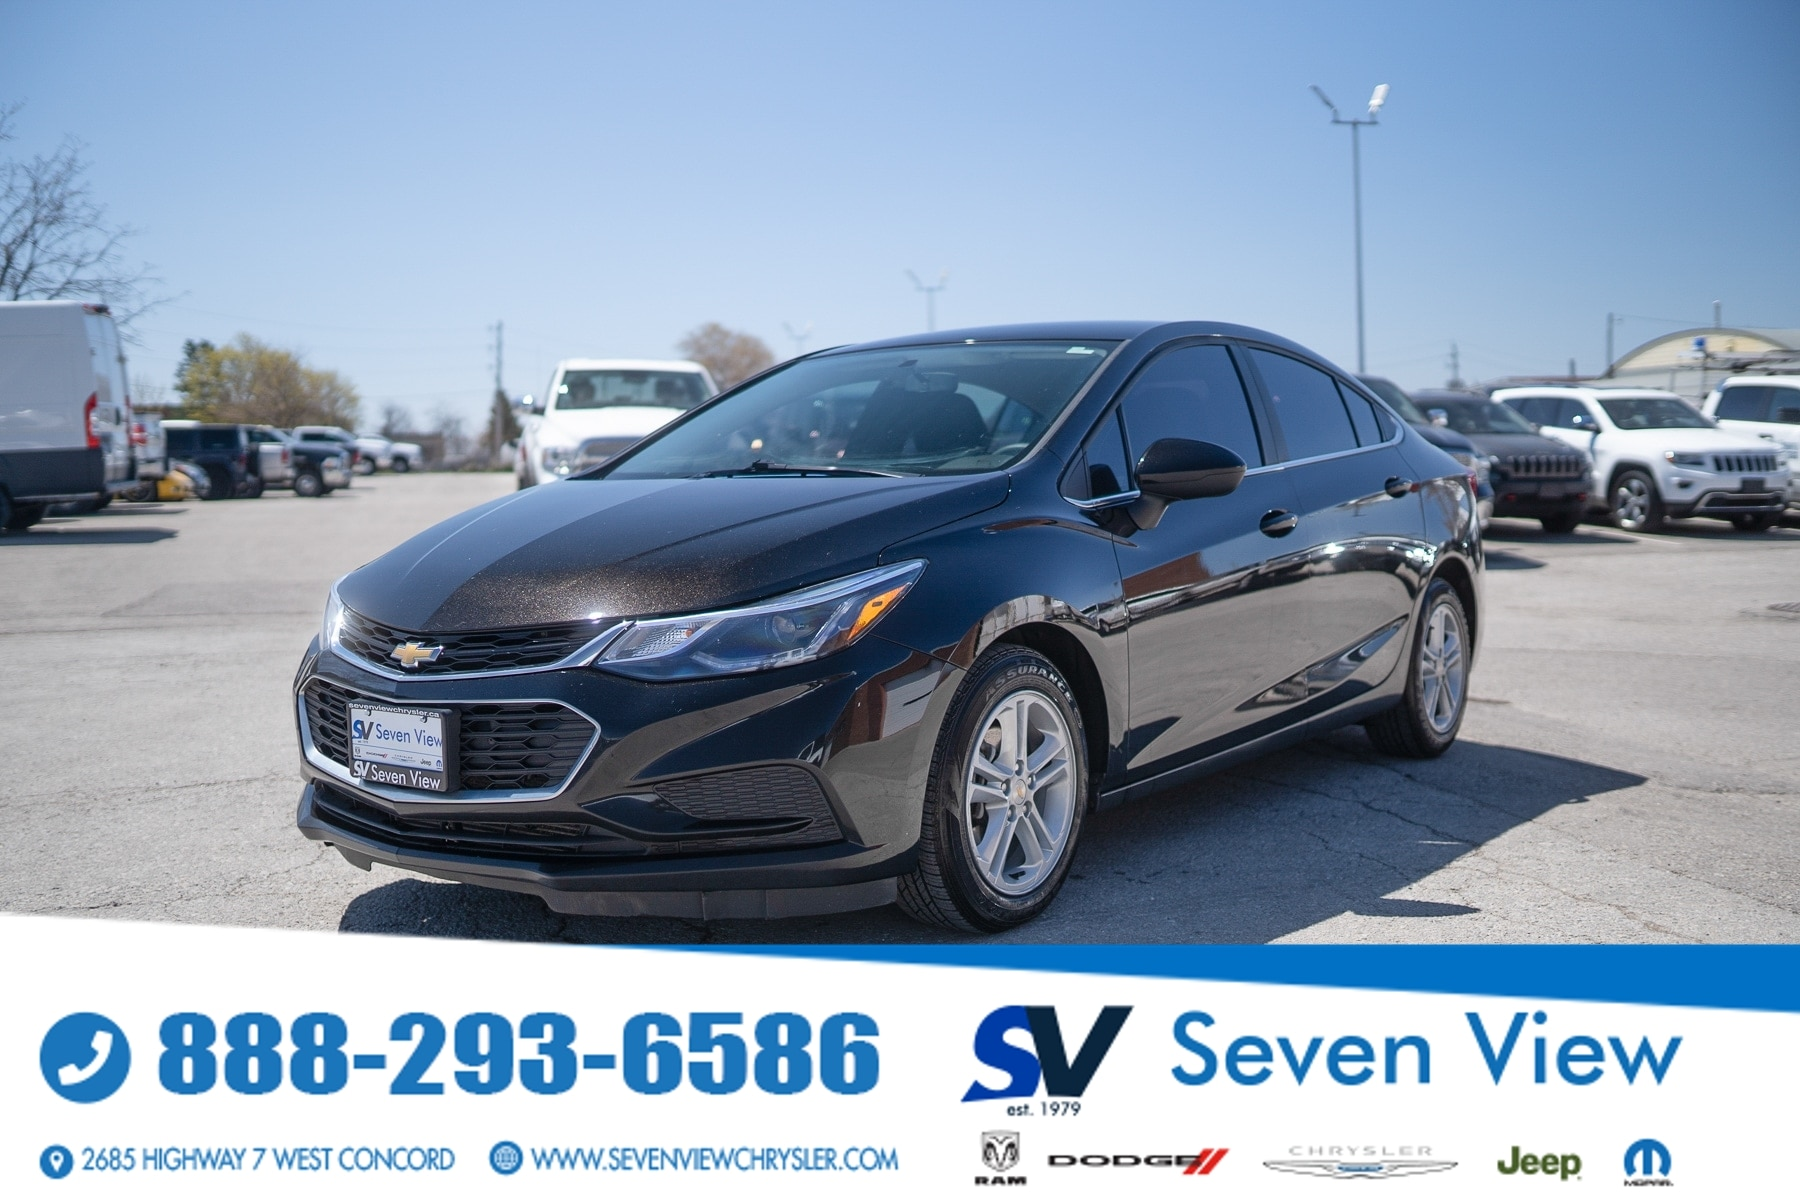 used 2018 Chevrolet Cruze car, priced at $11,377